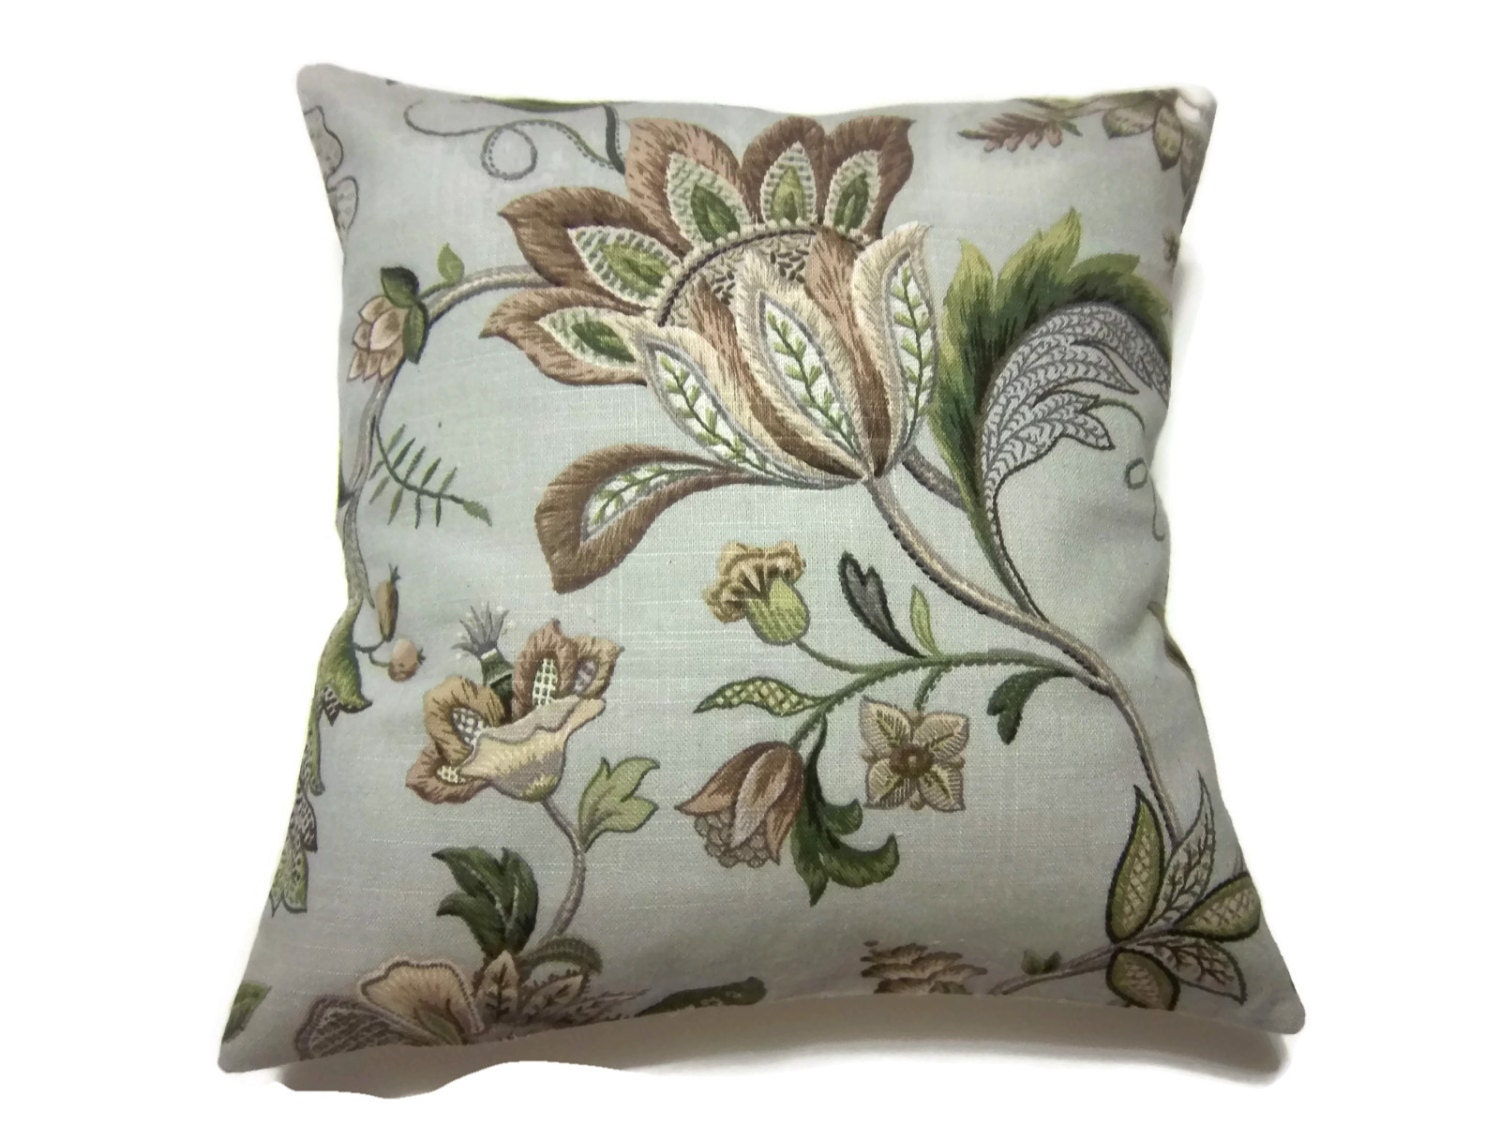 Olive Green Decorative Pillow : Decorative Pillow Cover Gray Taupe Olive Green Brown